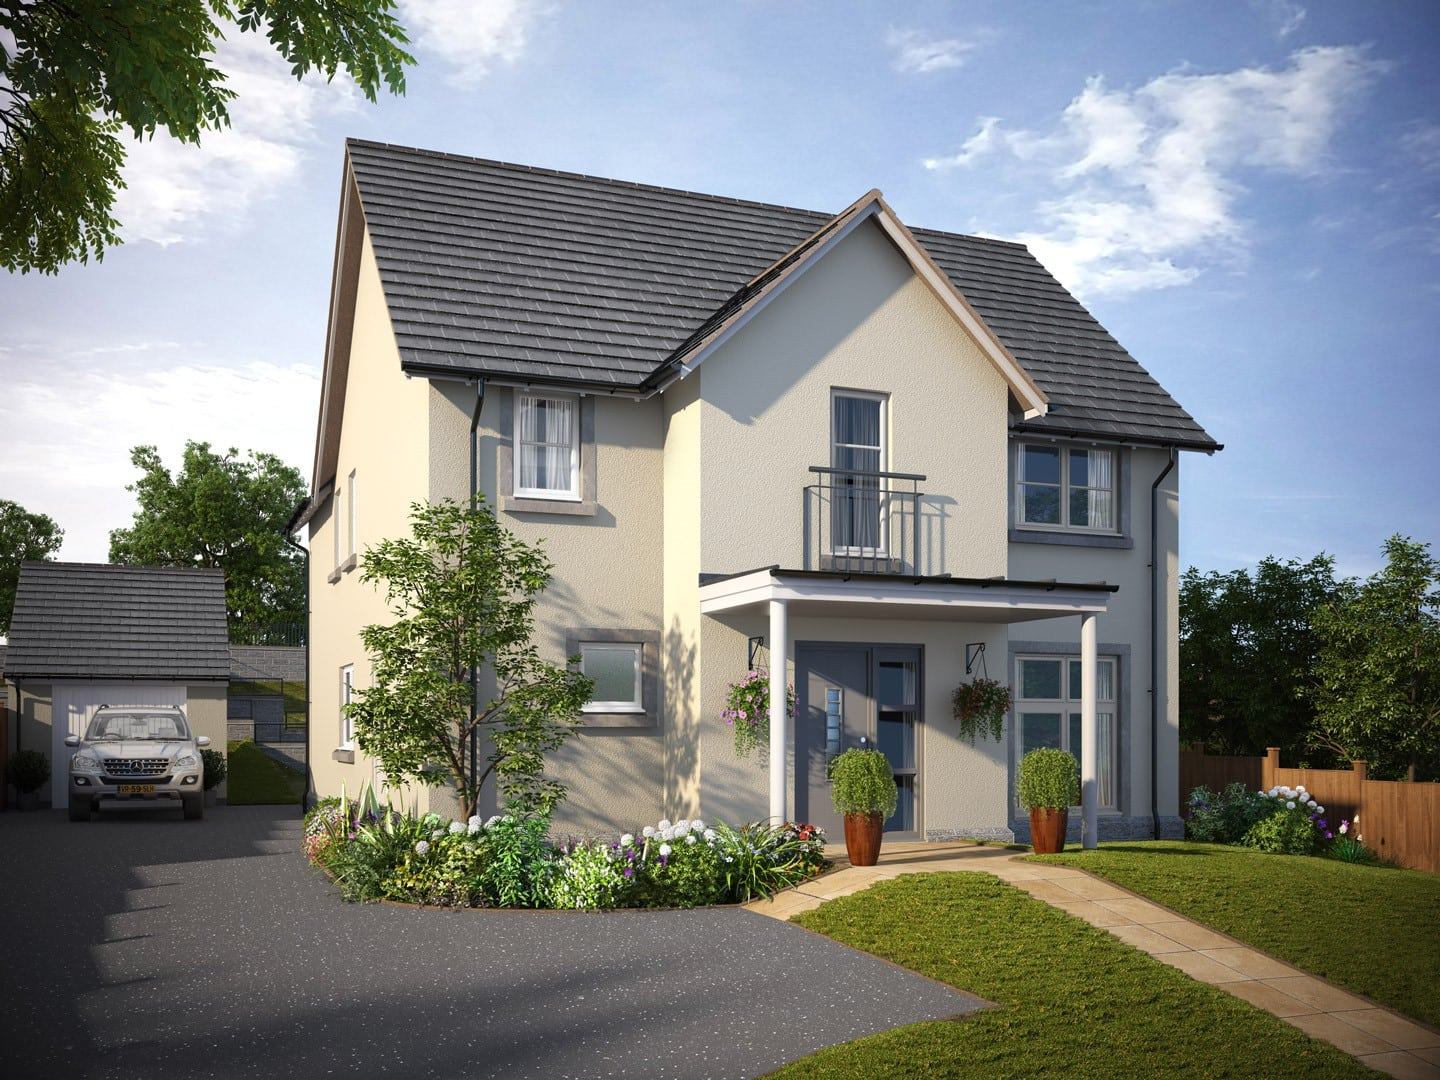 5 bedroom home in royal deeside the delgatie muir homes for New homes to build